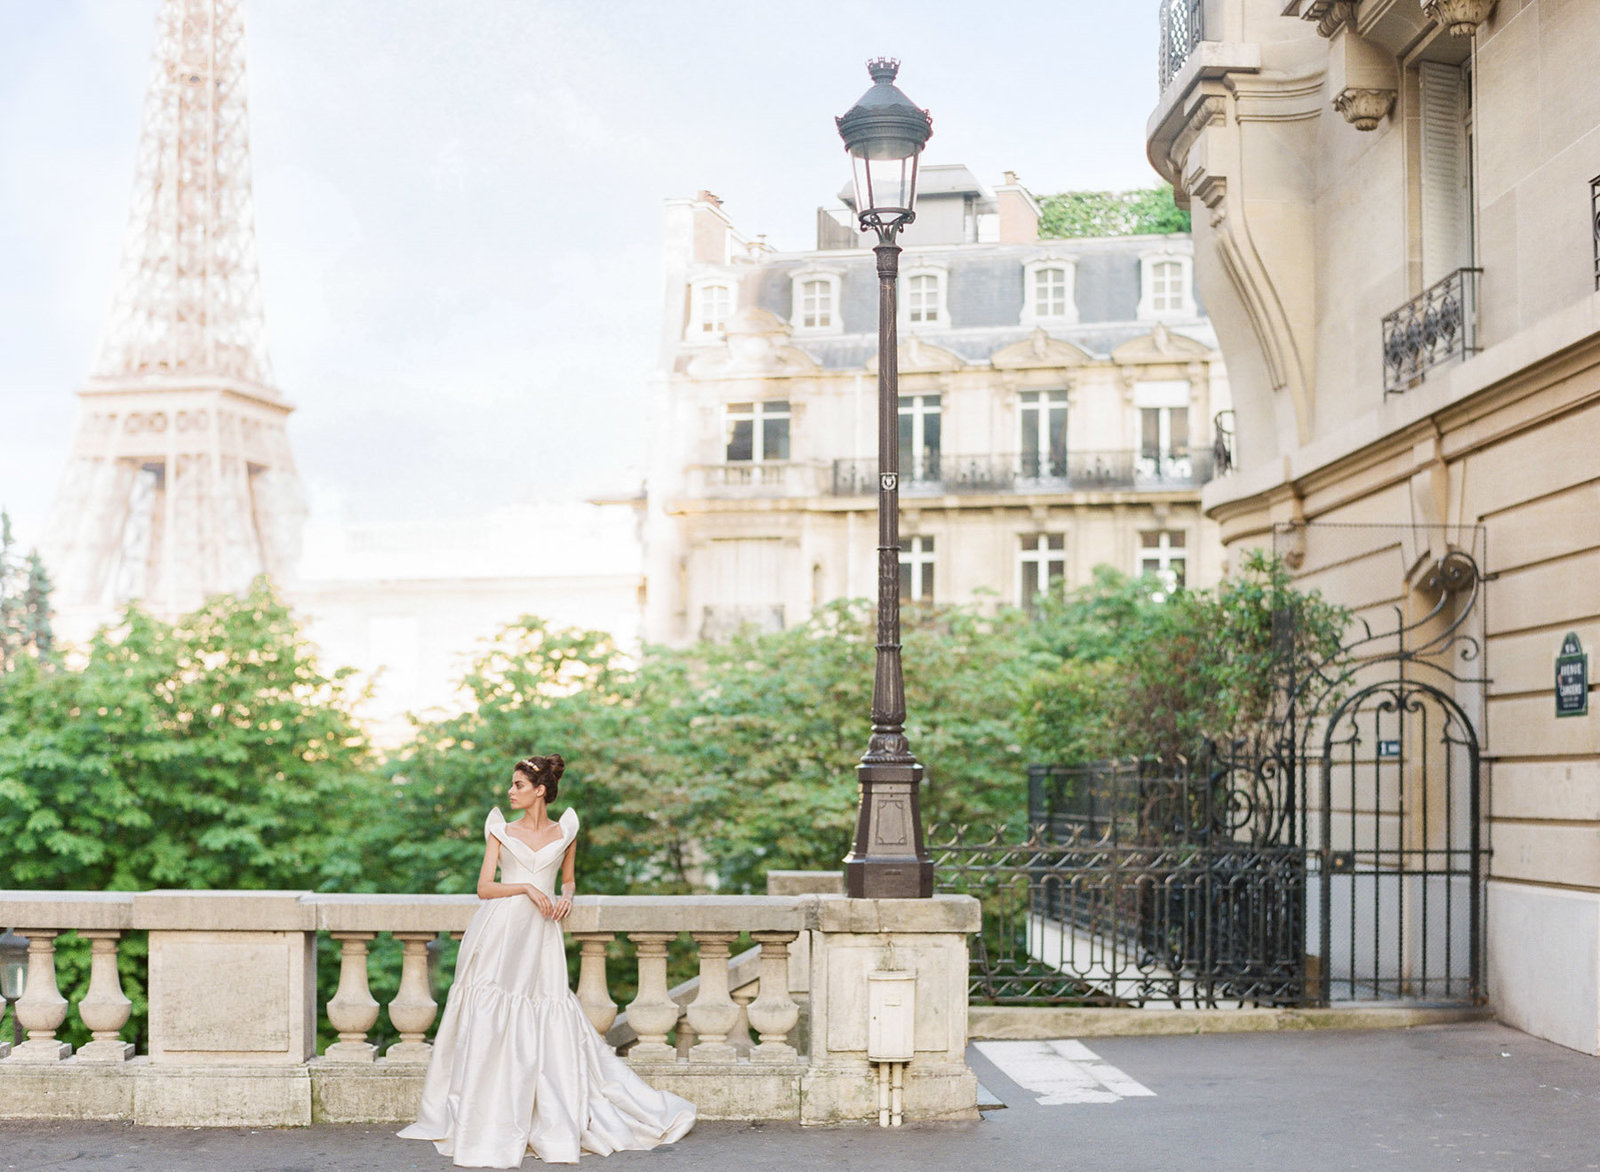 Molly-Carr-Photography-Paris-Film-Photographer-France-Wedding-Photographer-Europe-Destination-Wedding-85